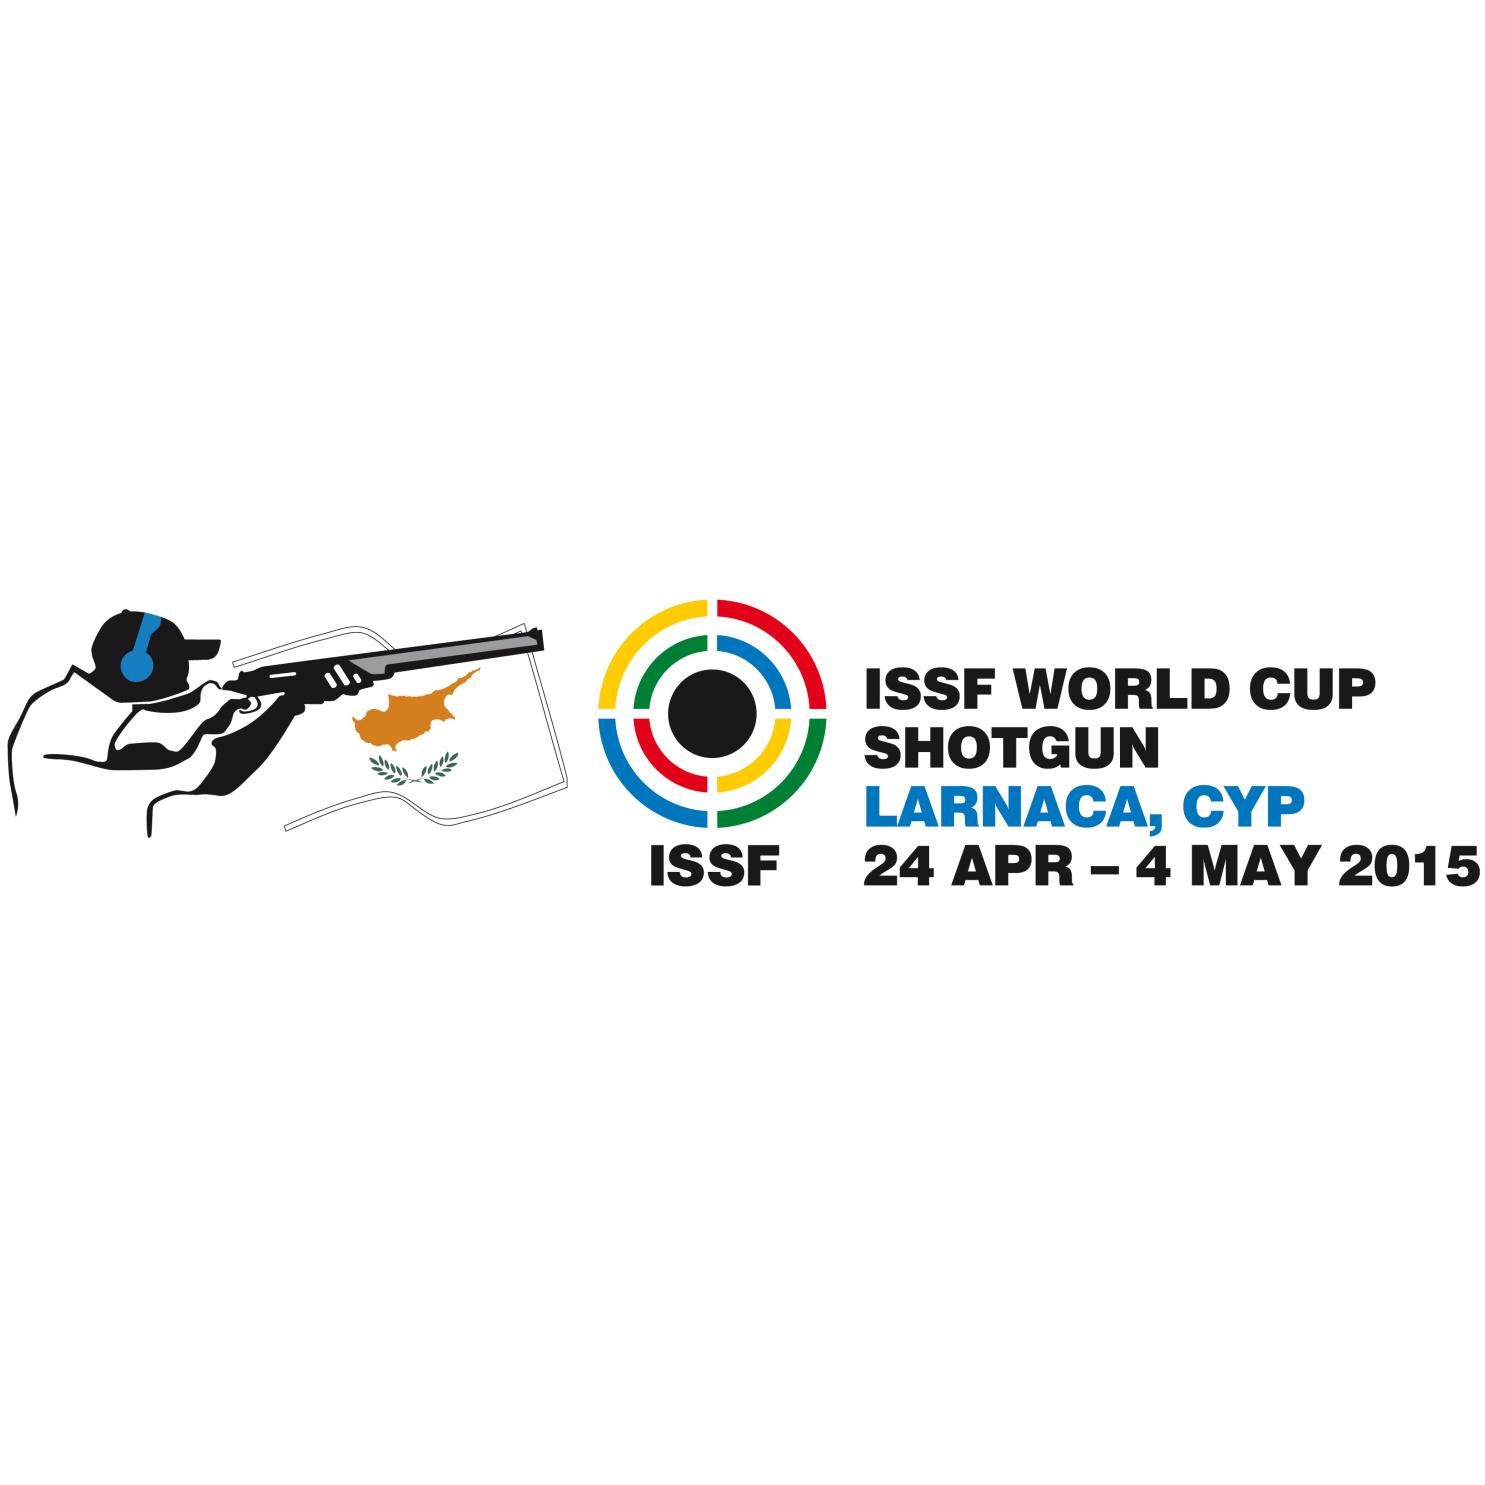 2015 ISSF Shooting World Cup - Shotgun